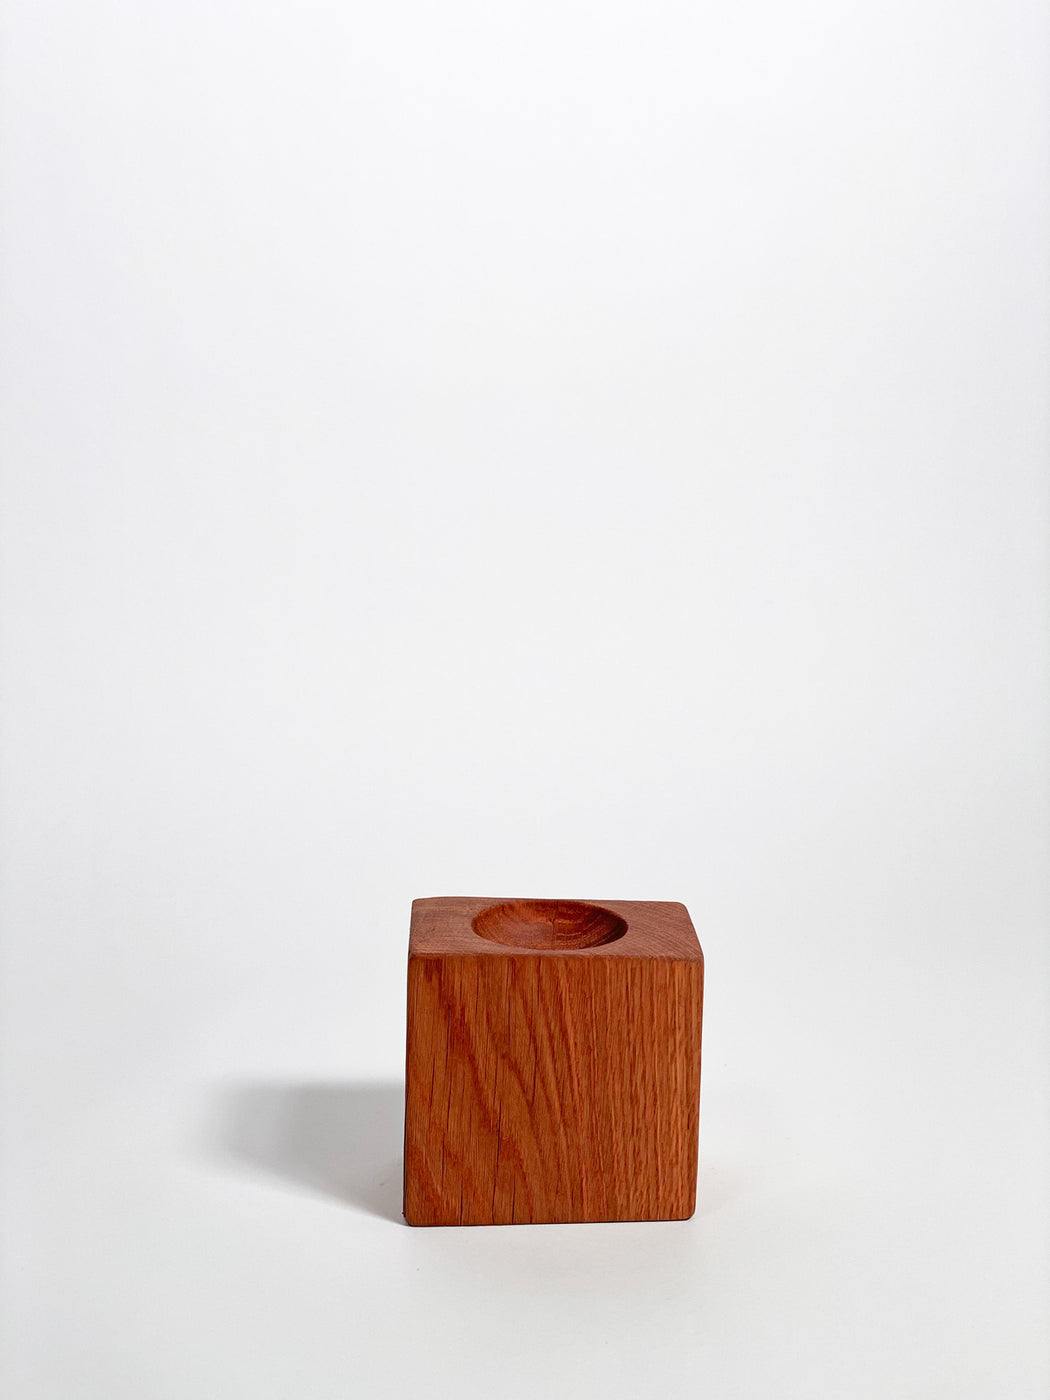 White Oak Square Bowl by Tucker Robbins